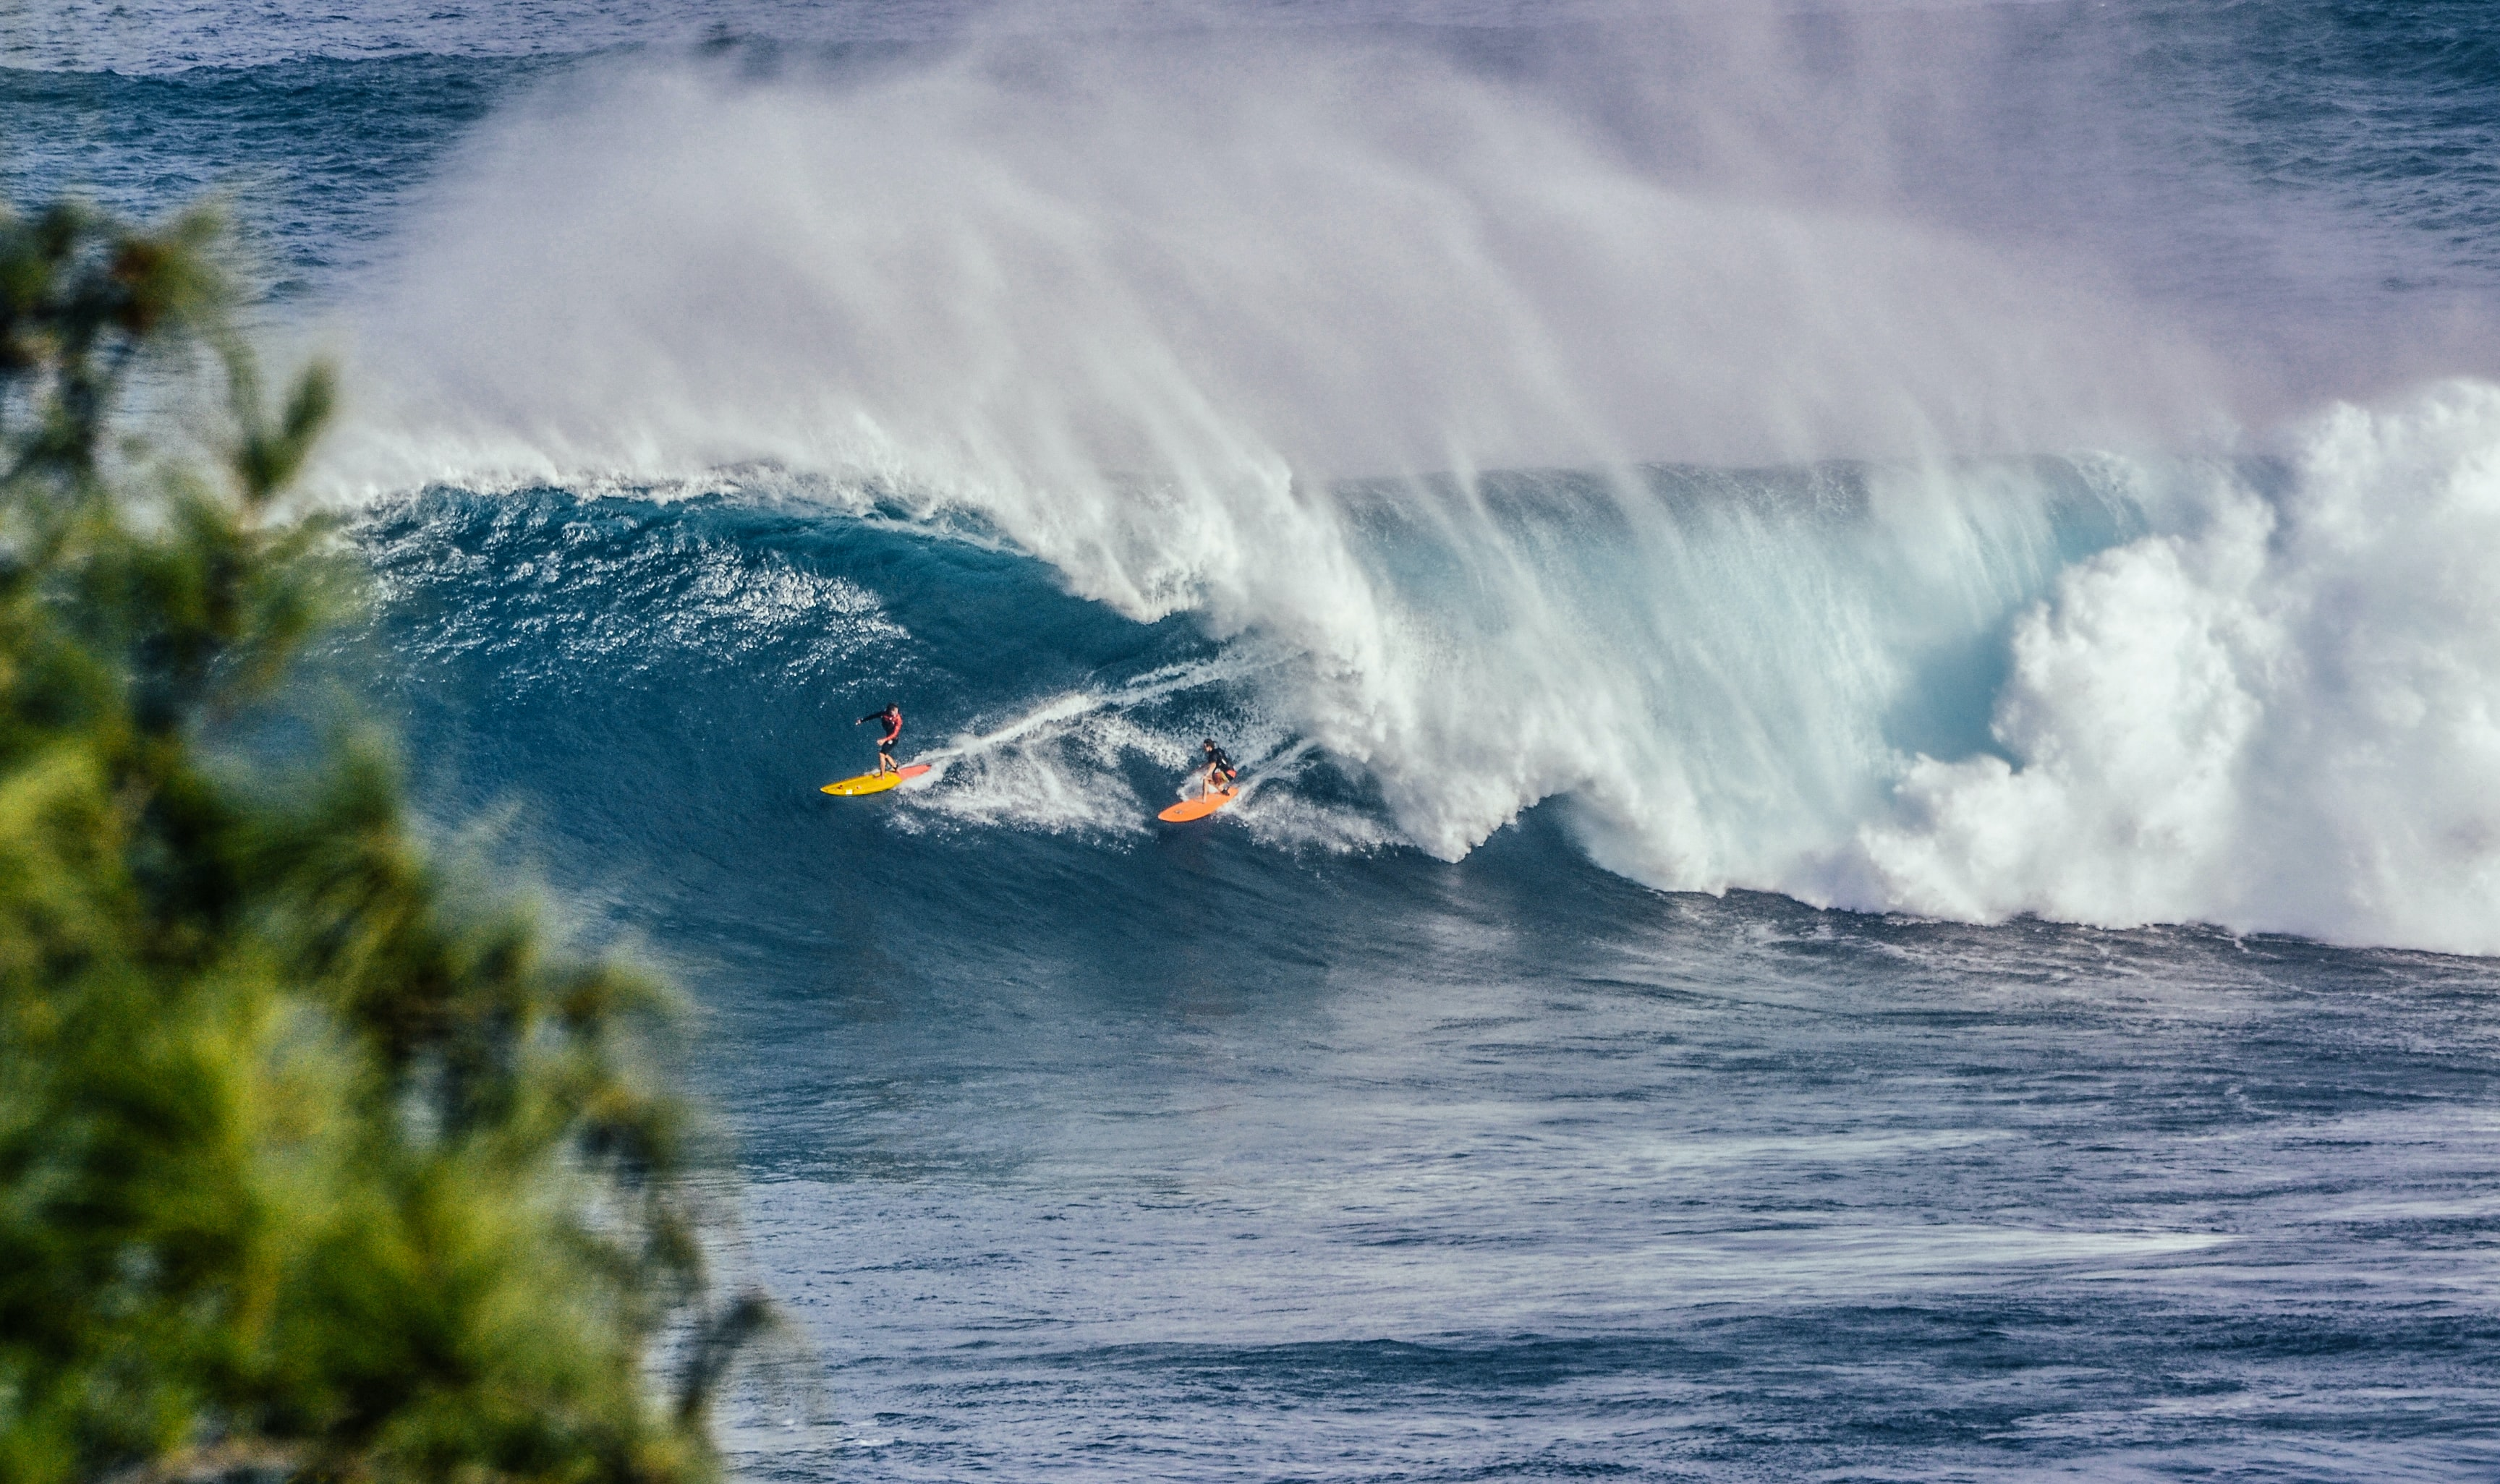 Two surfers in the water as the waves break at Jaws